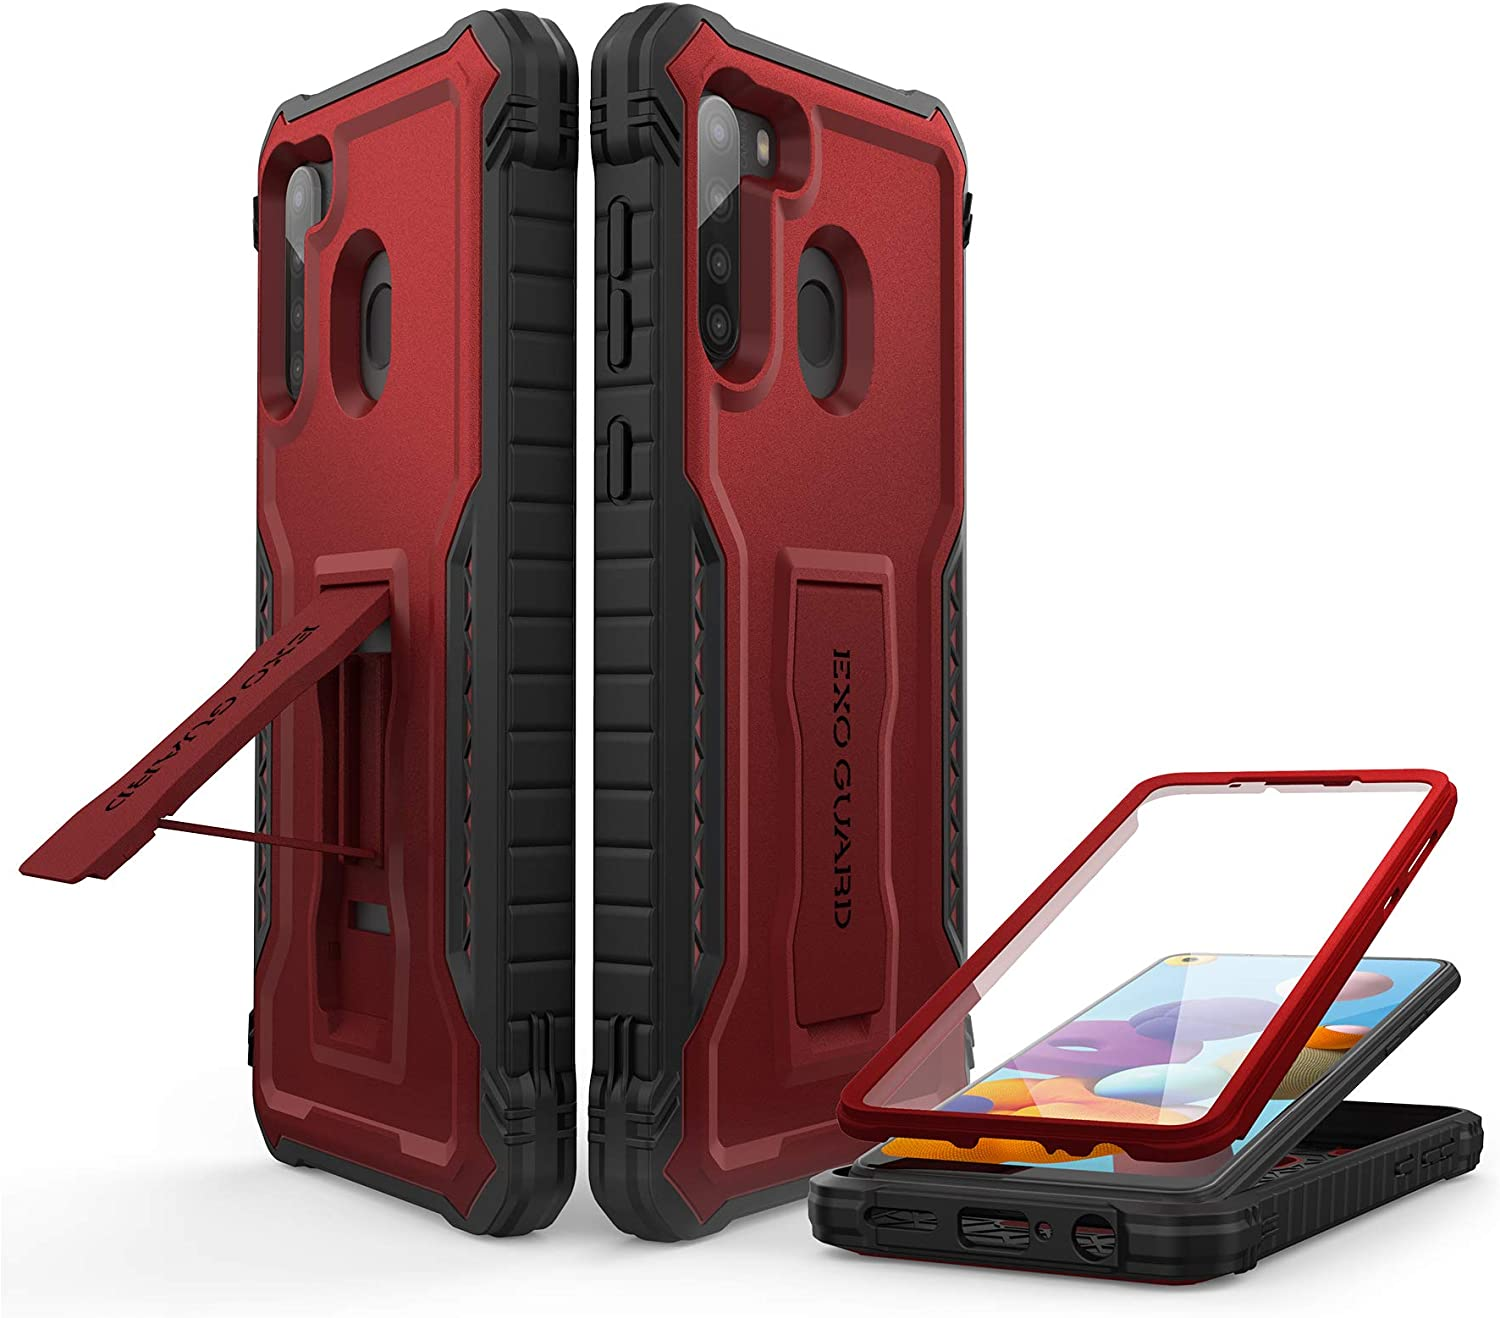 ExoGuard for Samsung Galaxy A21 Case, Rubber Shockproof Full-Body Cover Case Built-in Screen Protector and Kickstand Compatible with Samsung A21 Phone (Red)